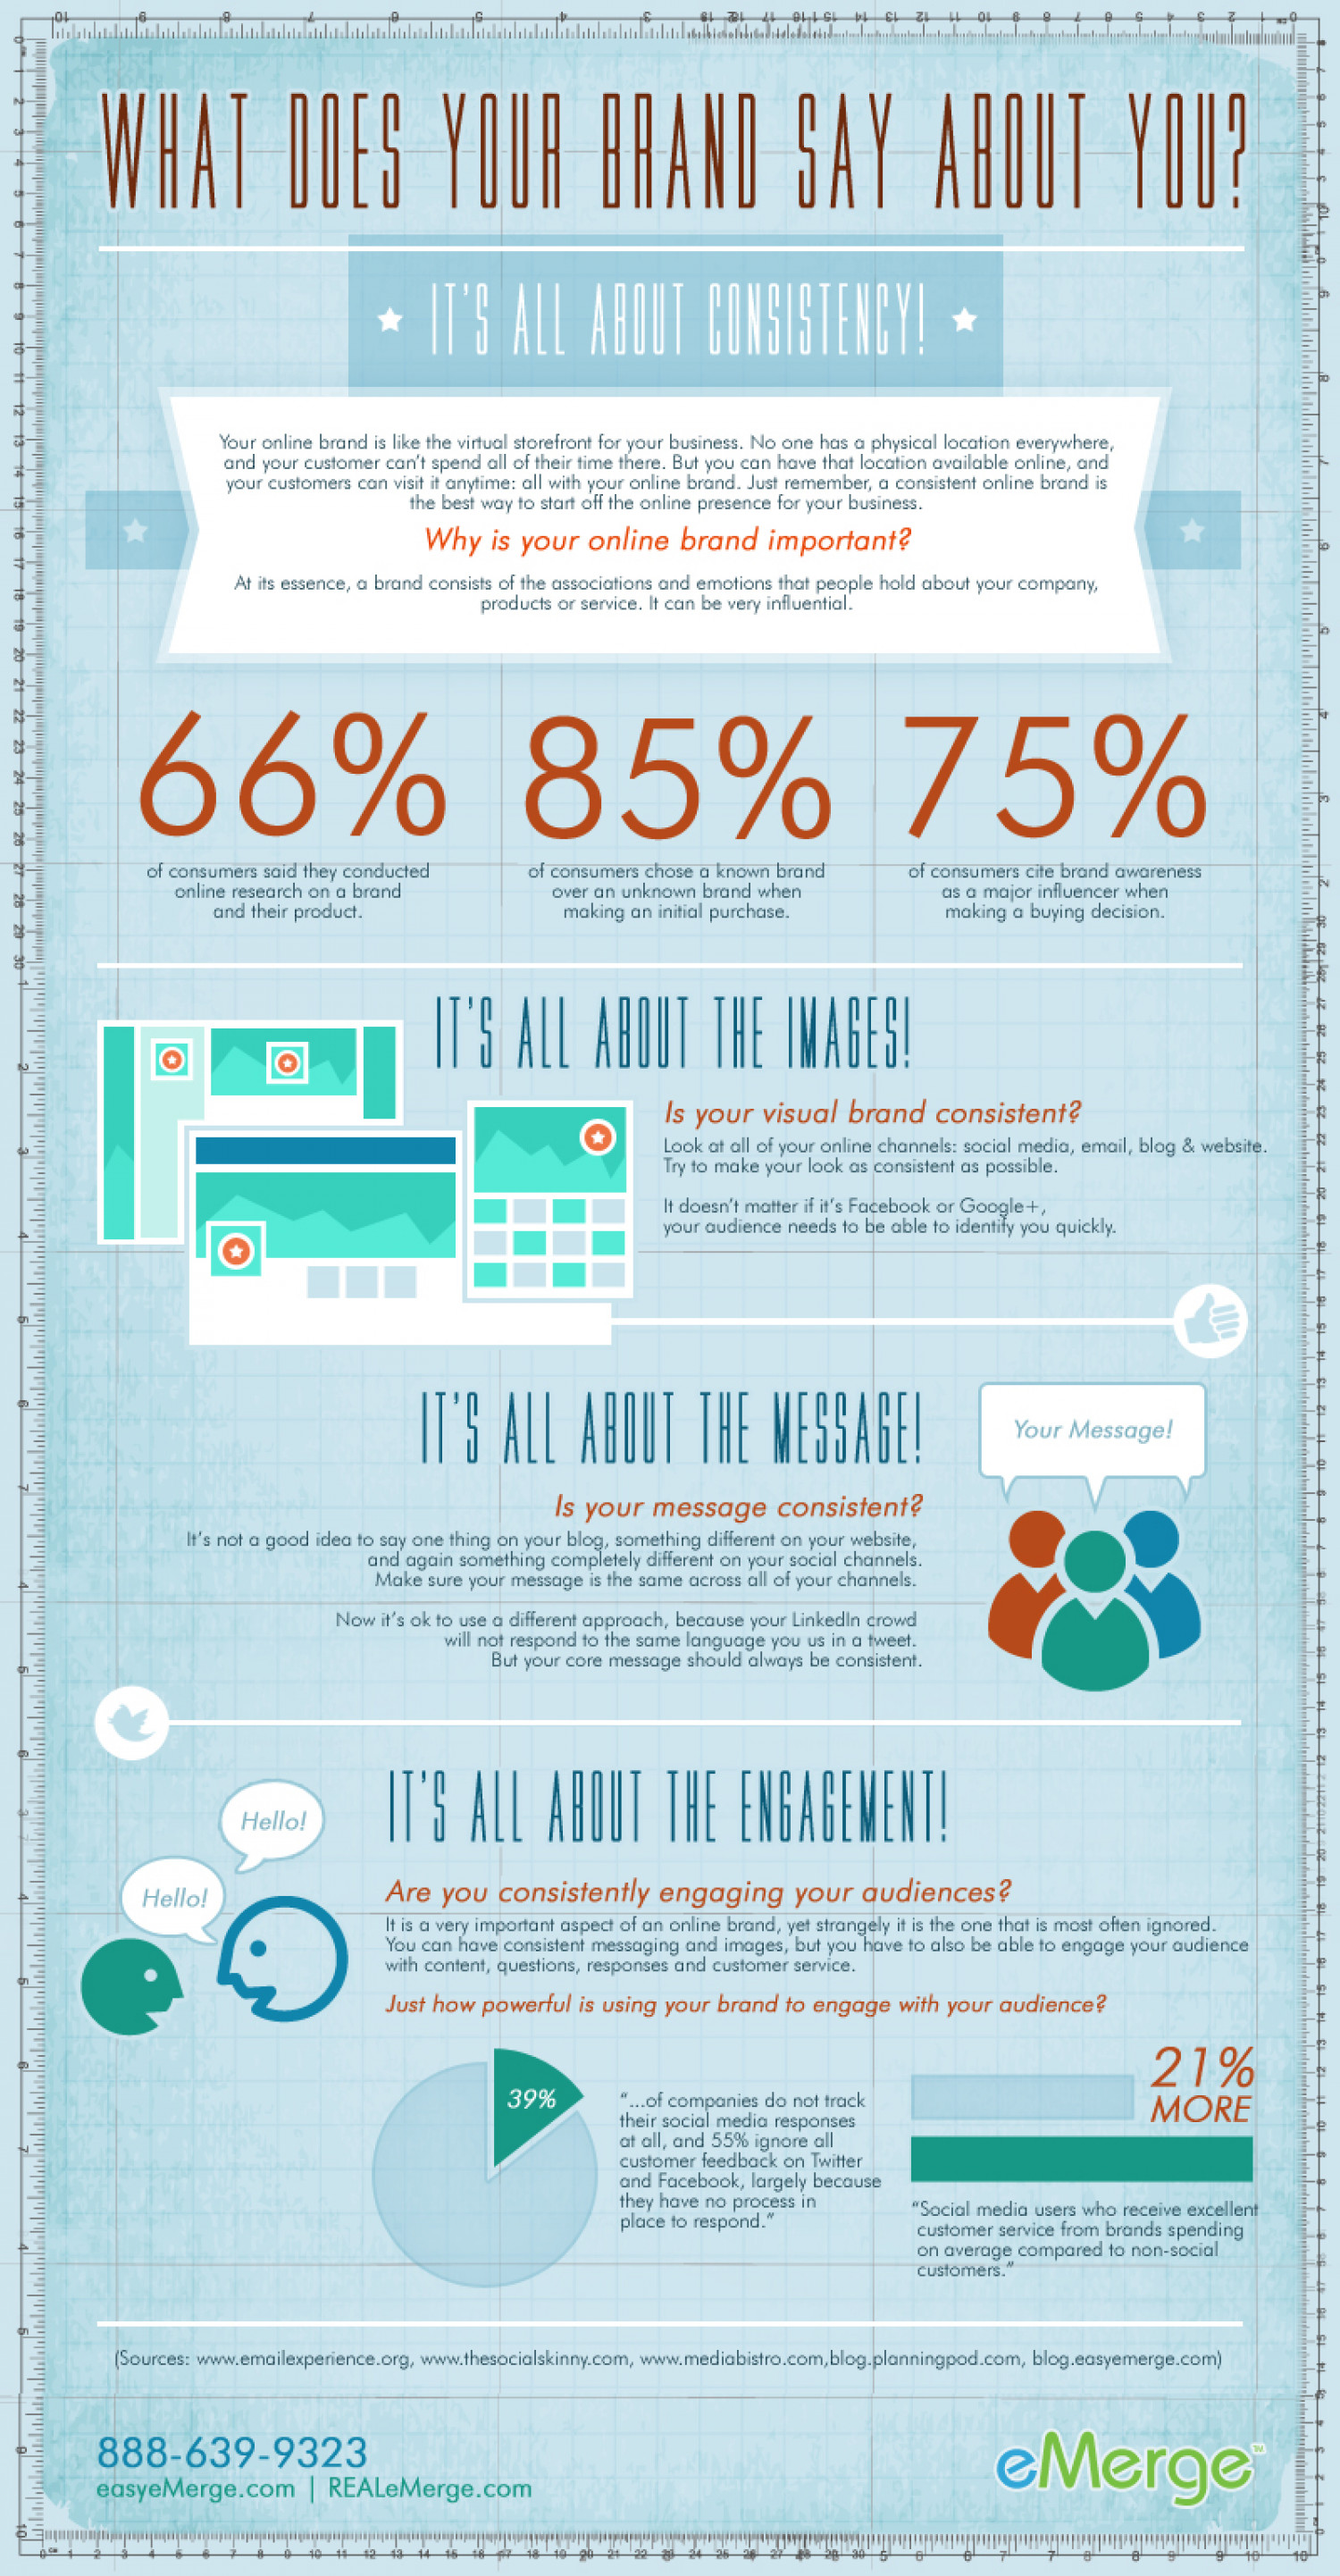 What Does Your Online Brand Say About You? Infographic